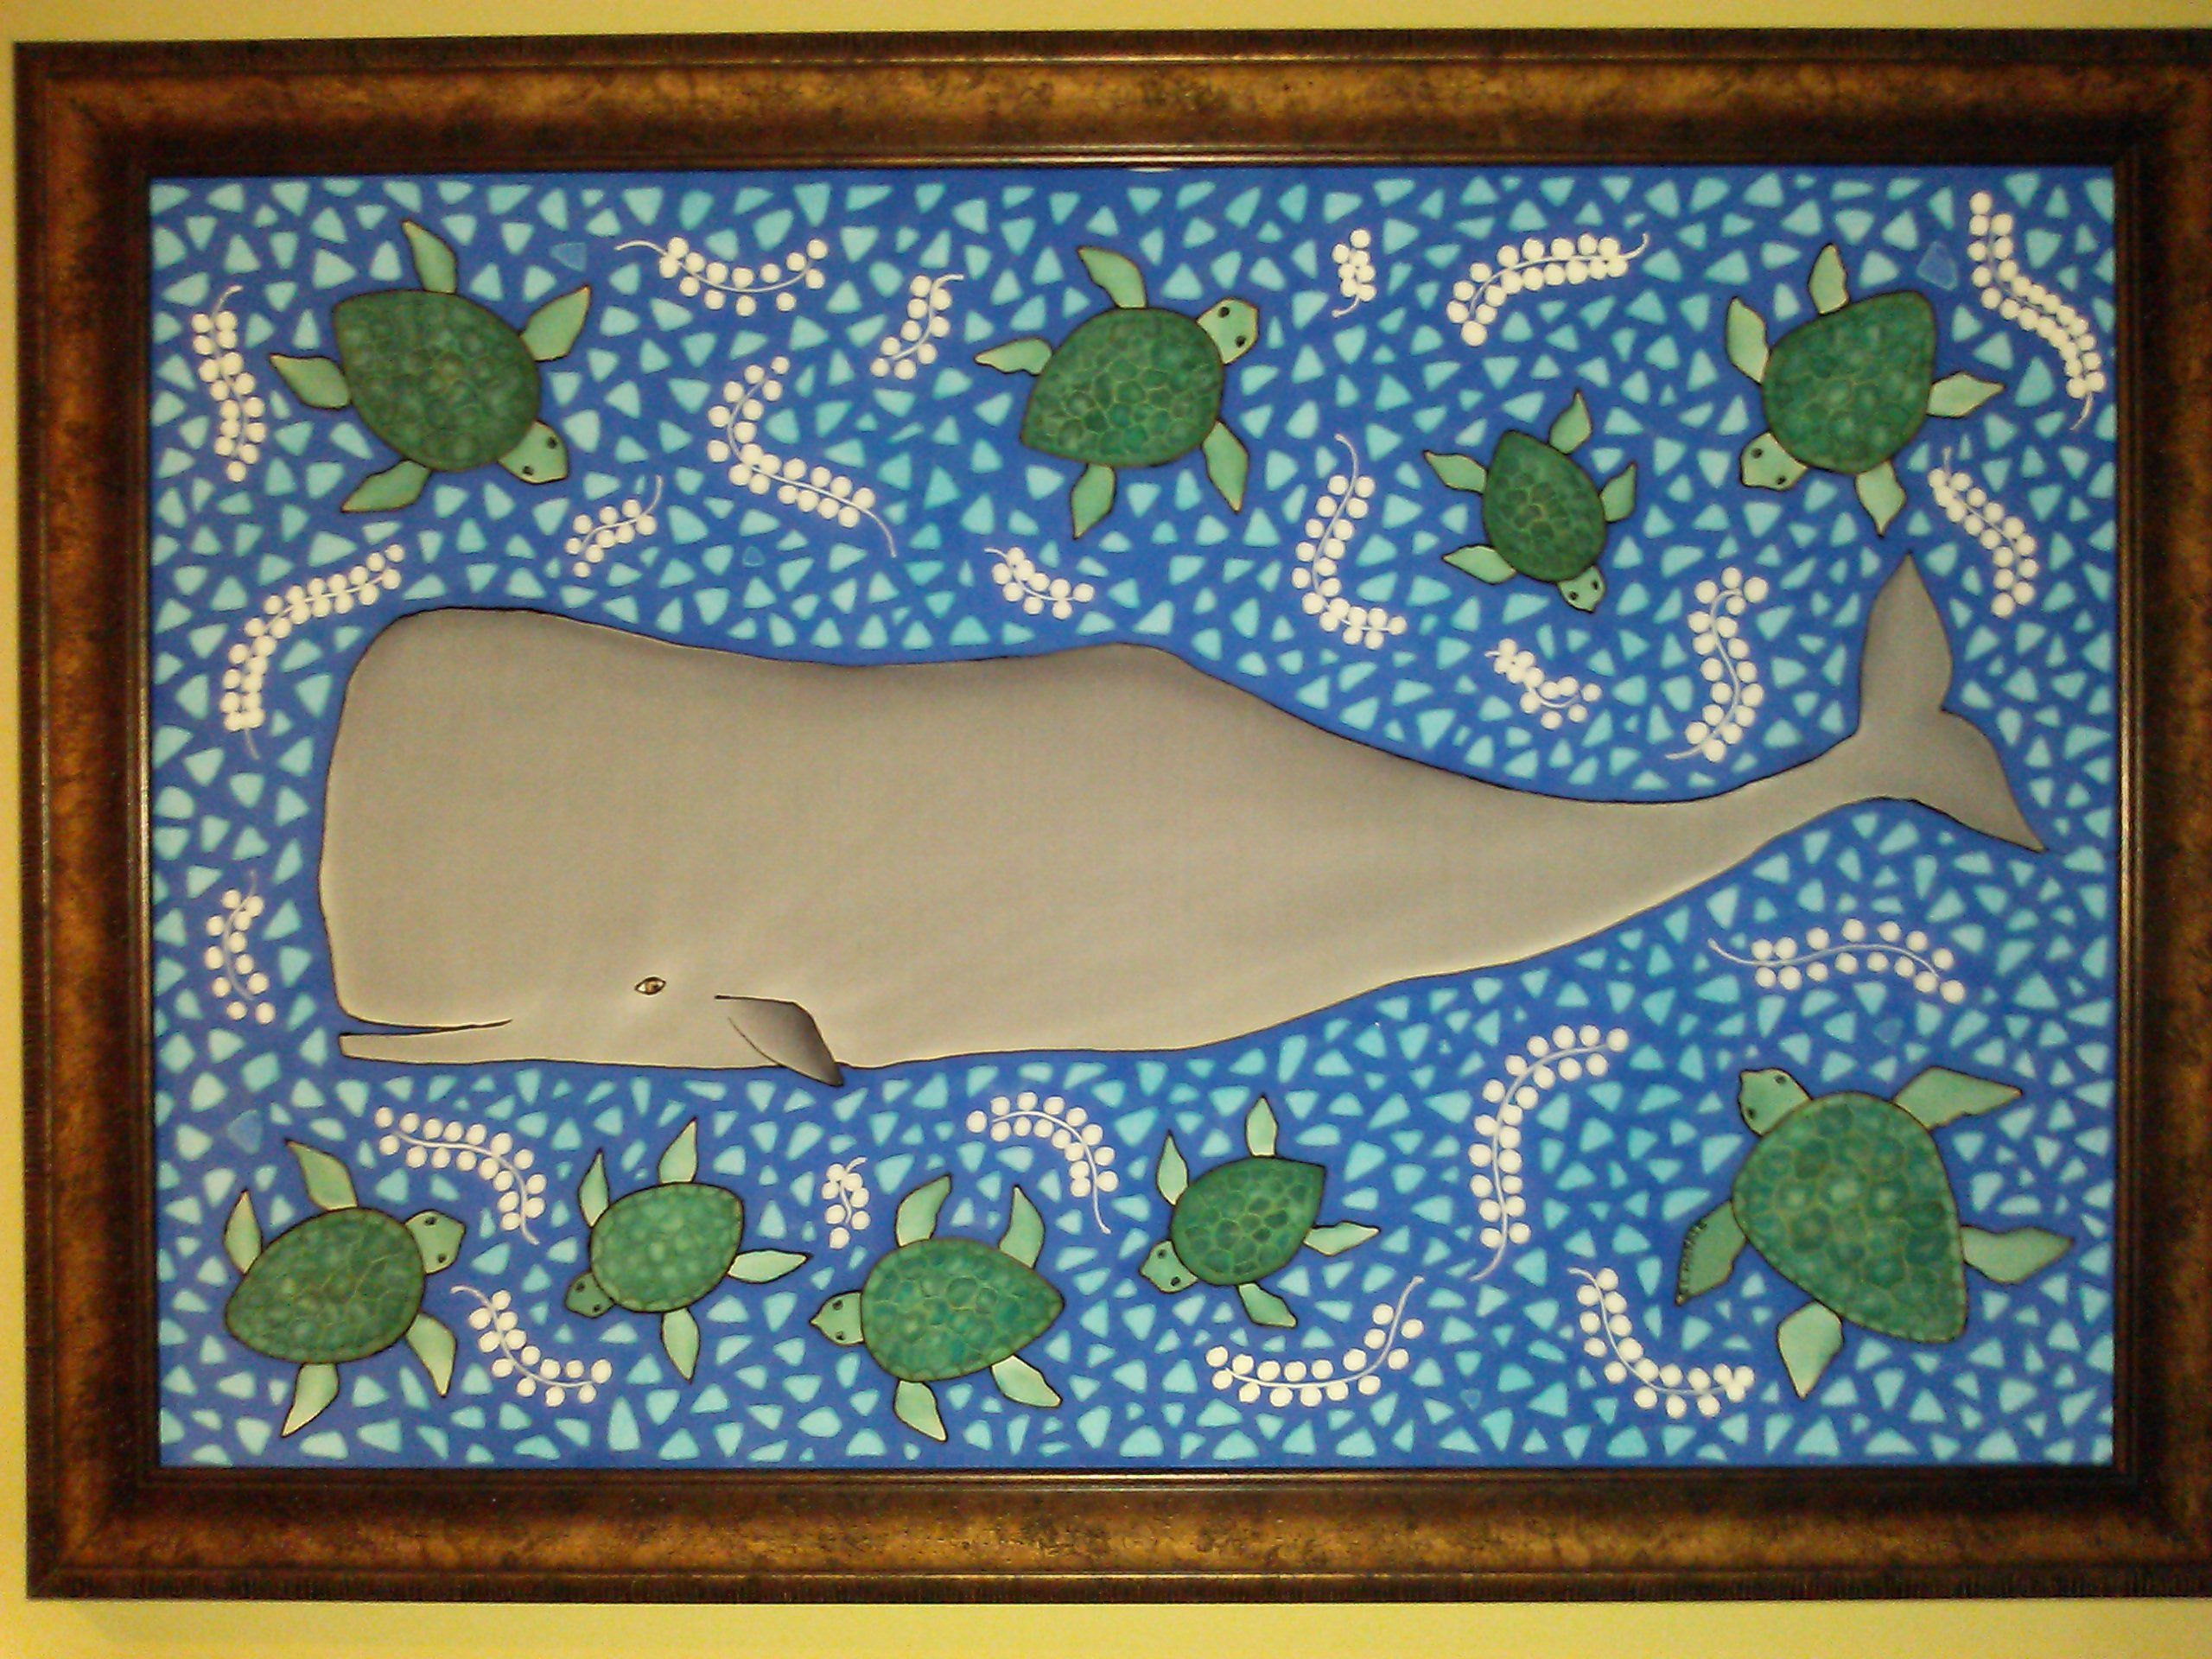 """Whale and Turtles original painting on silk , approx 30"""" x 40"""" by G L Morris  Available, price $1200.00 frame included, inquire glmorrisstudio@yahoo.com"""